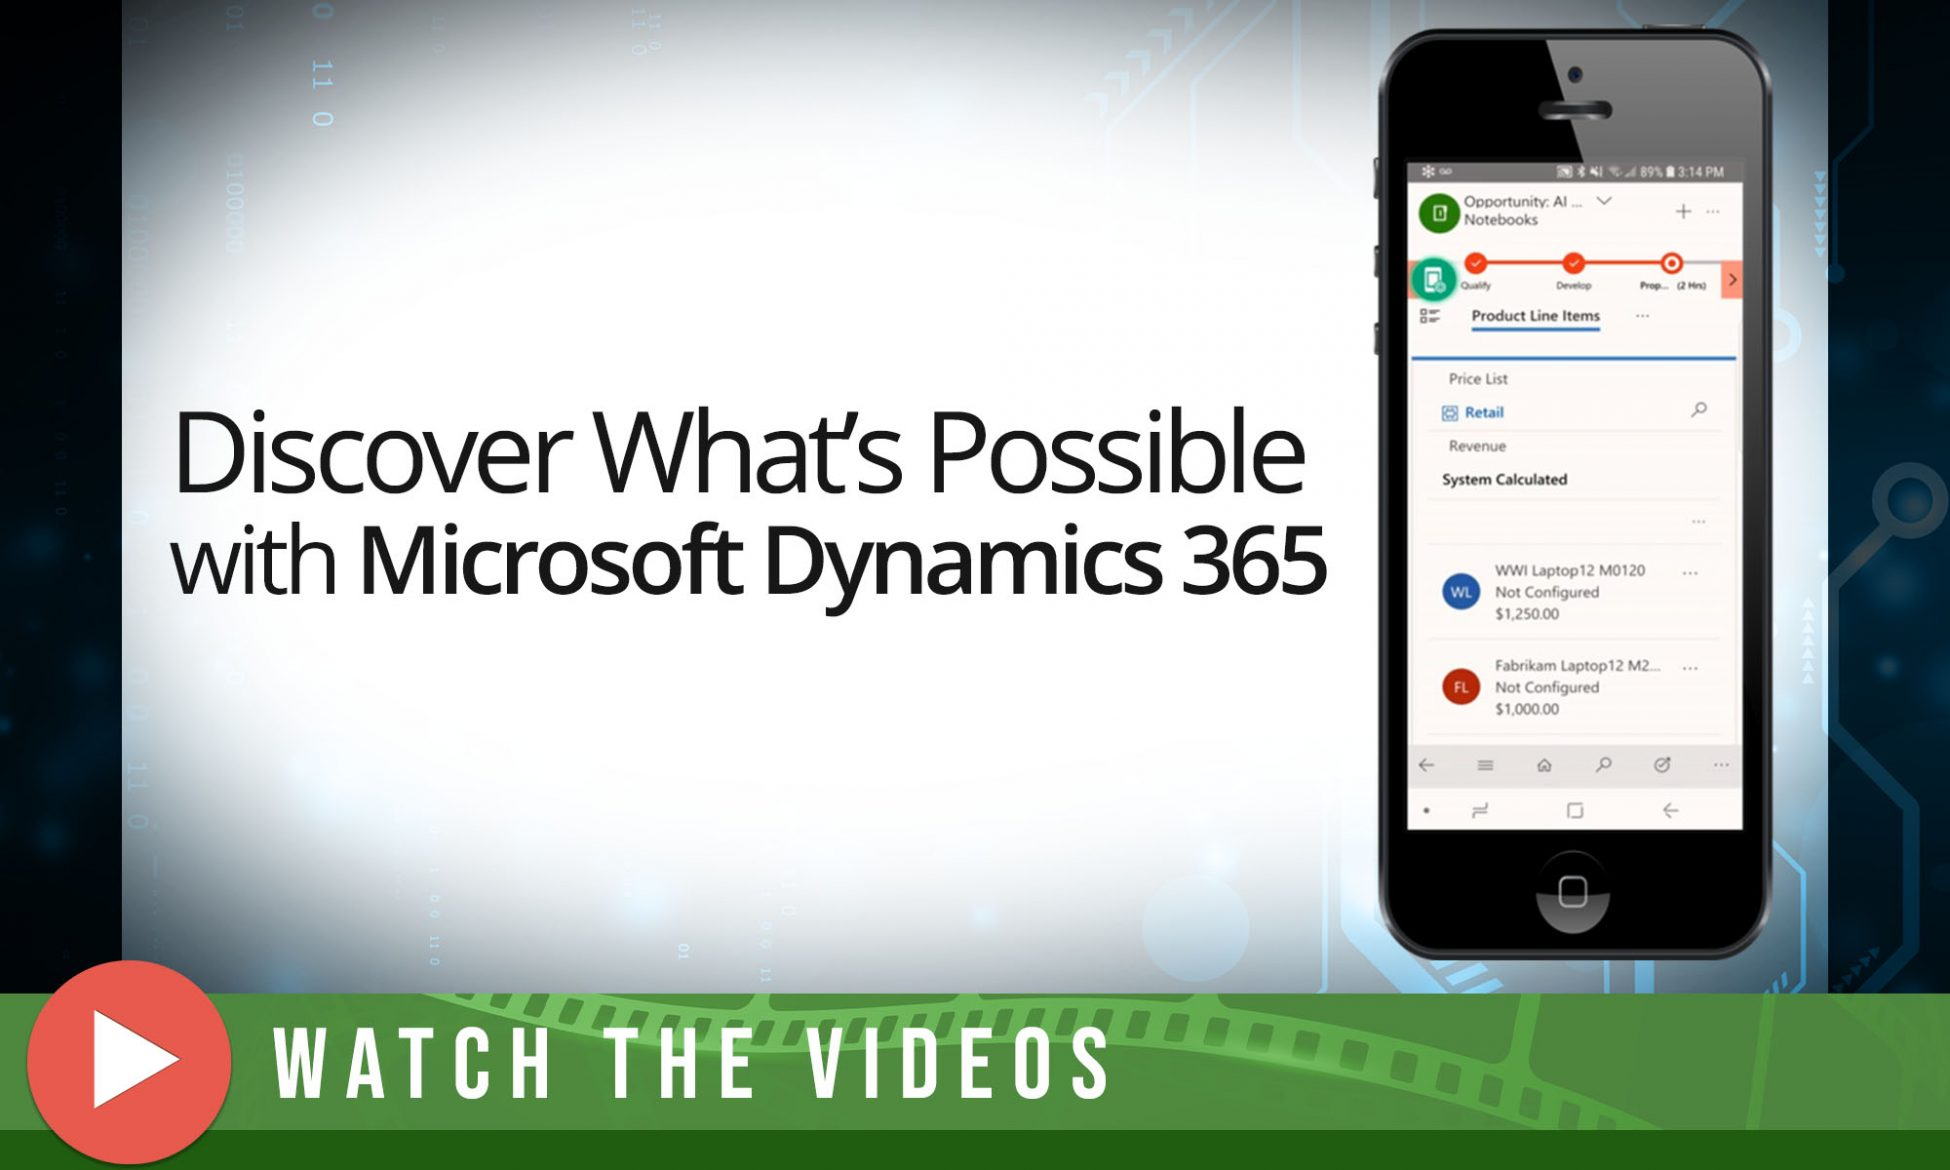 Discover What's Possible with Microsoft Dynamics 365